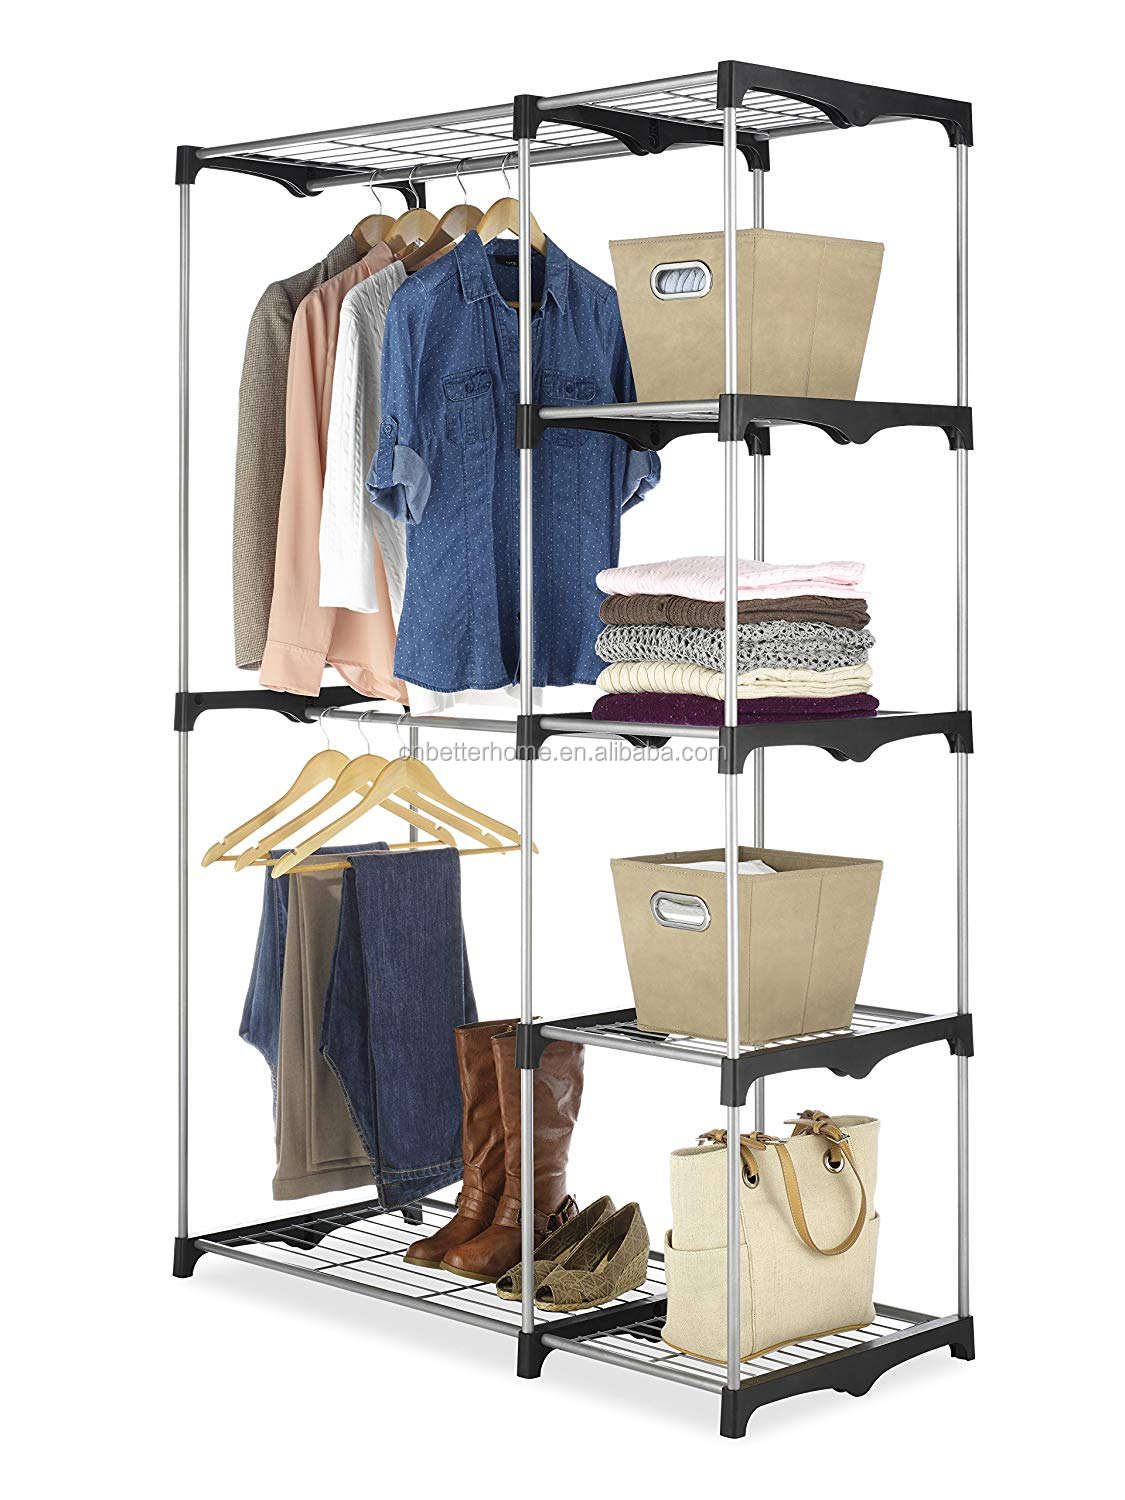 Portable Clothes Closet Wardrobe With Hanging Rod And Storage Rack